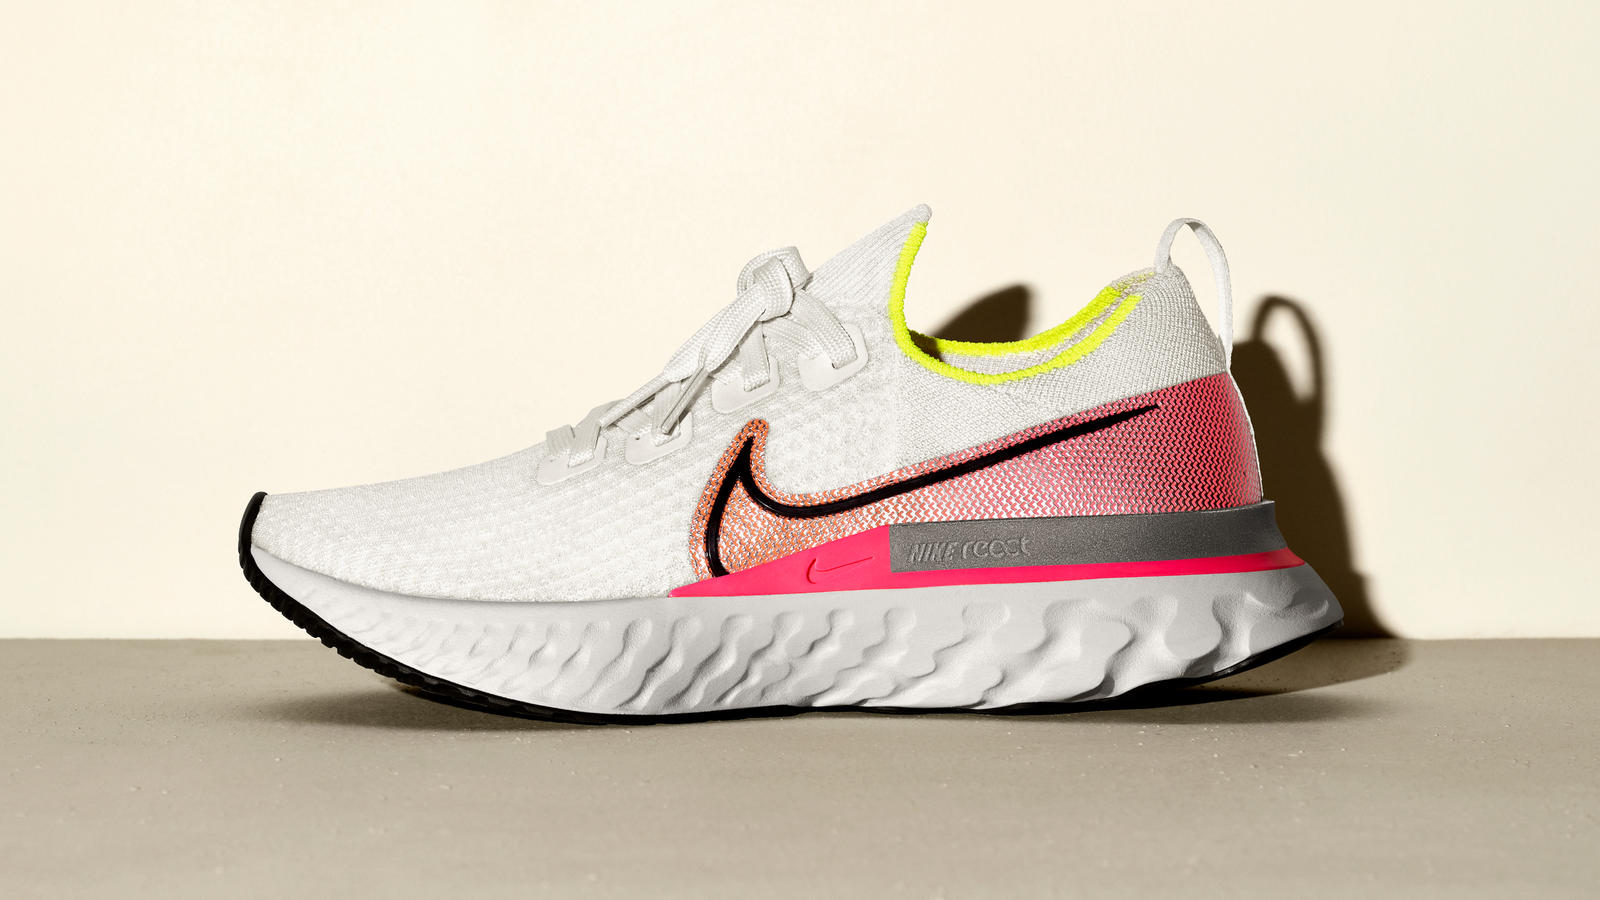 Nike React Infinity Run Official Images and Release - Nike News